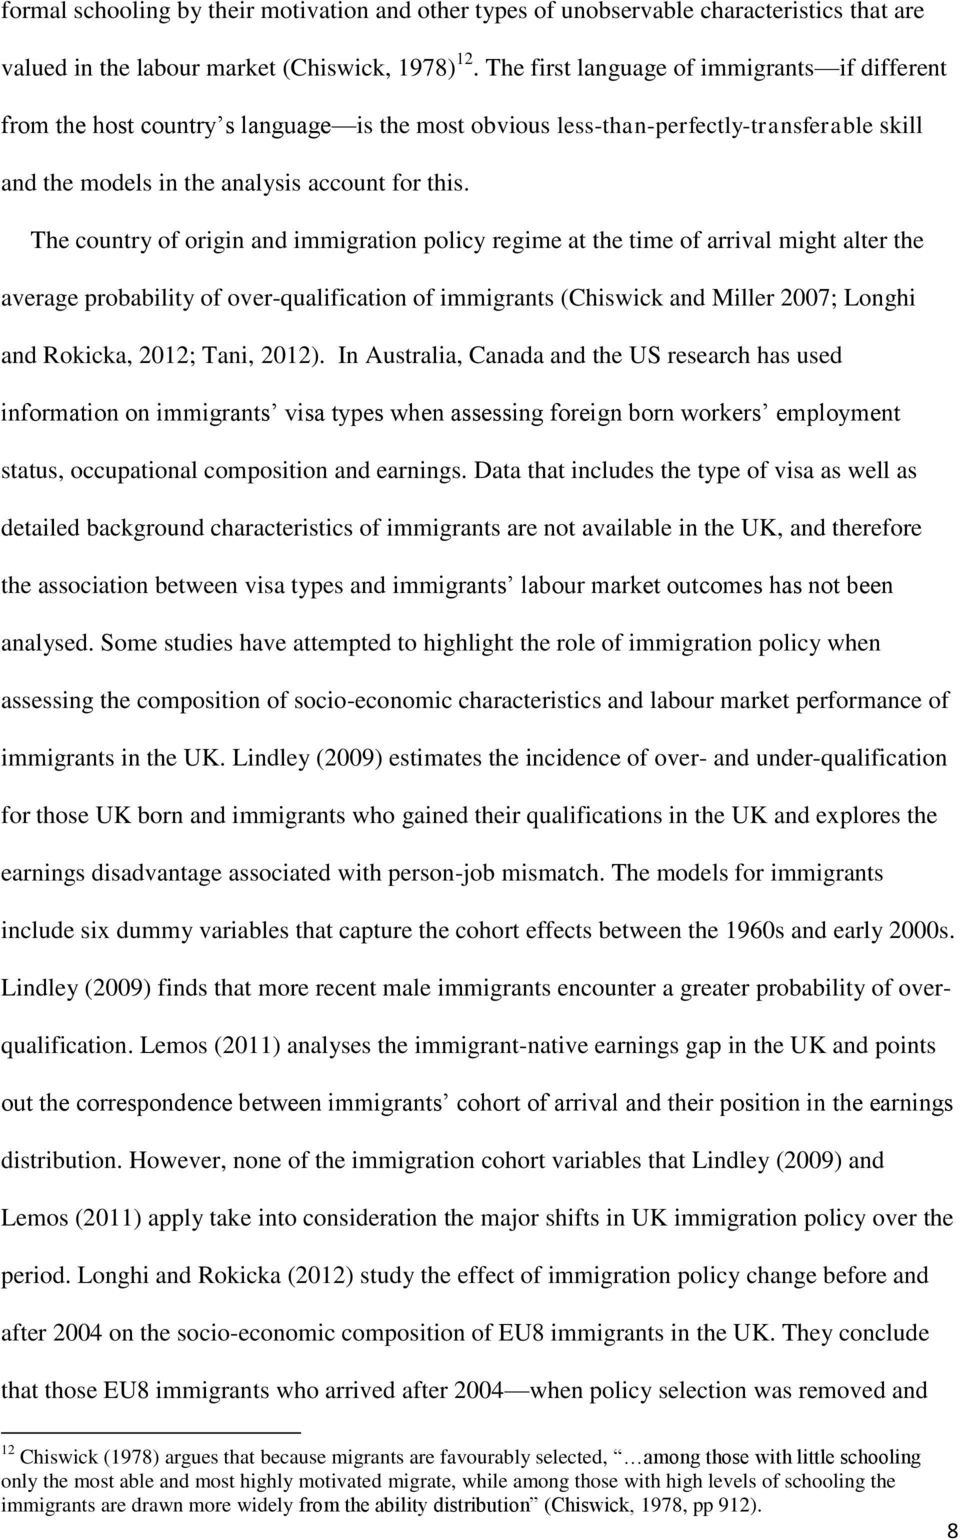 The country of origin and immigration policy regime at the time of arrival might alter the average probability of over-qualification of immigrants (Chiswick and Miller 2007; Longhi and Rokicka, 2012;